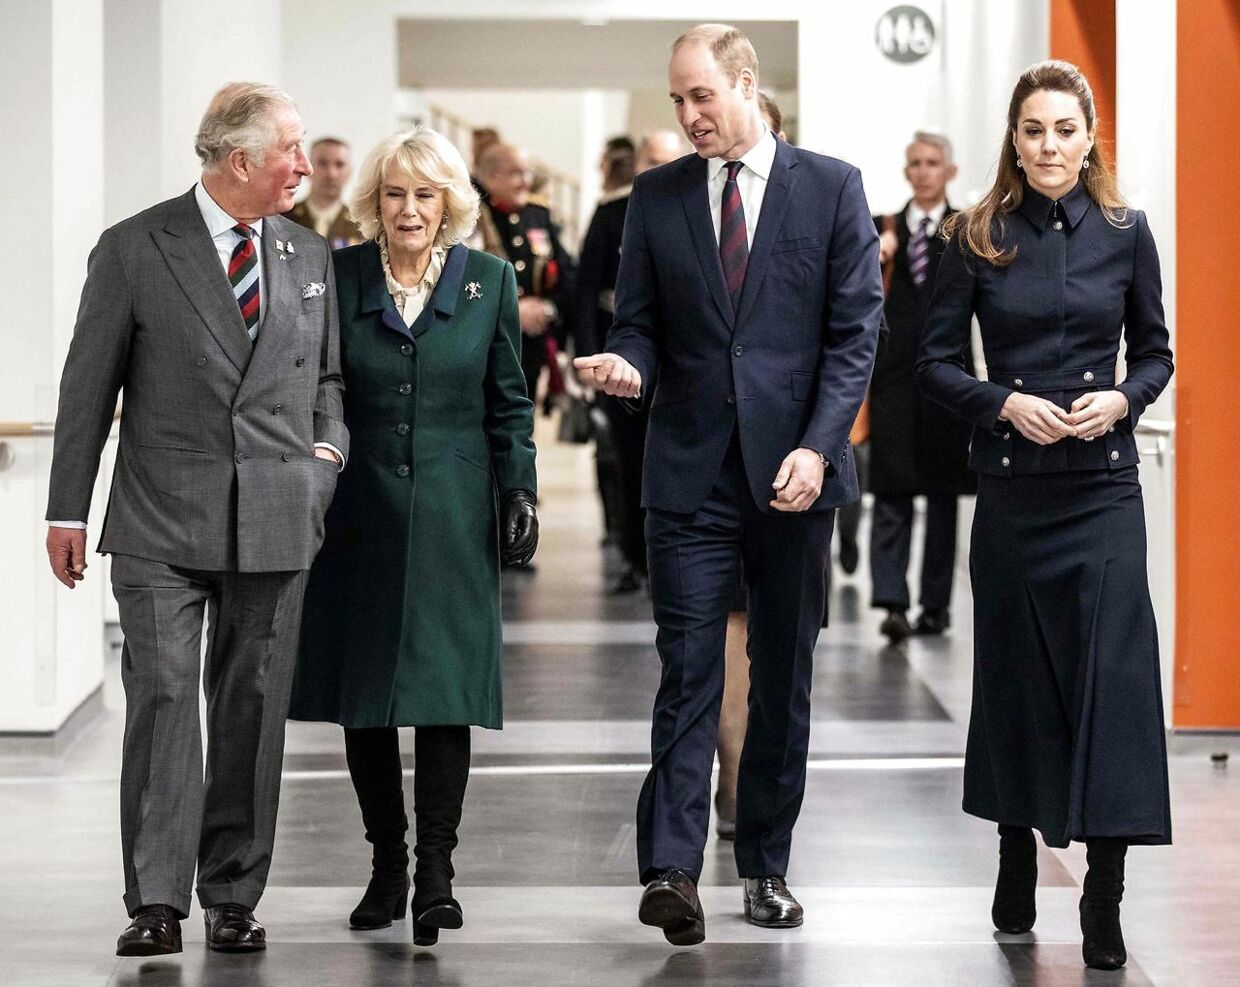 Britain's Prince William, Duke of Cambridge (2R) and his wife Britain's Catherine, Duchess of Cambridge (R) talk with his father Britain's Prince Charles, Prince of Wales (L) and his wife Britain's Camilla, Duchess of Cornwall (2L) during their visit to the Defence Medical Rehabilitation Centre (DMRC) in Loughborough, central England on February 11, 2020. - The DMRC currently provides services to a small group of veterans in the form of the Complex Prosthetic Assessment Clinic (CPAC), which is a joint MOD and NHS England commissioned outpatient clinic. (Photo by Richard Pohle / POOL / AFP)